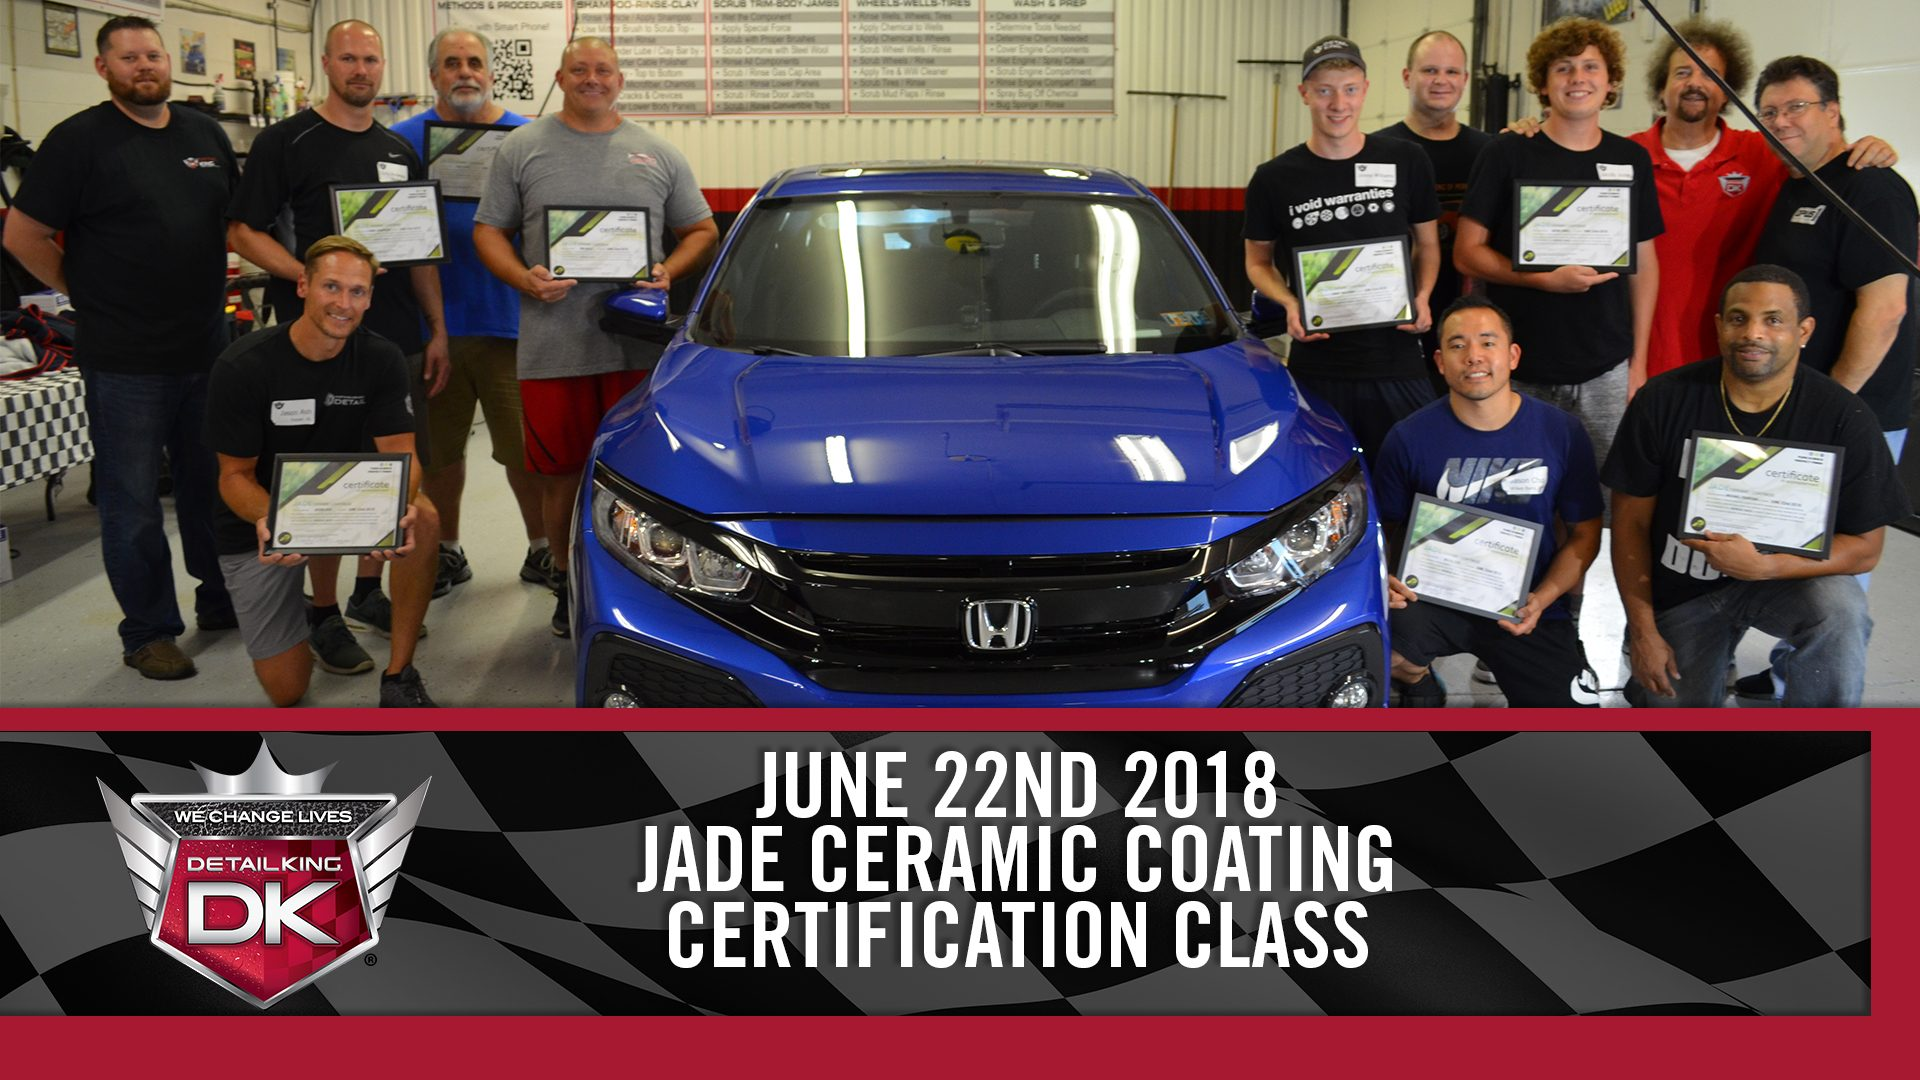 June 22nd 2018 – Jade Ceramic Coating Certification Class